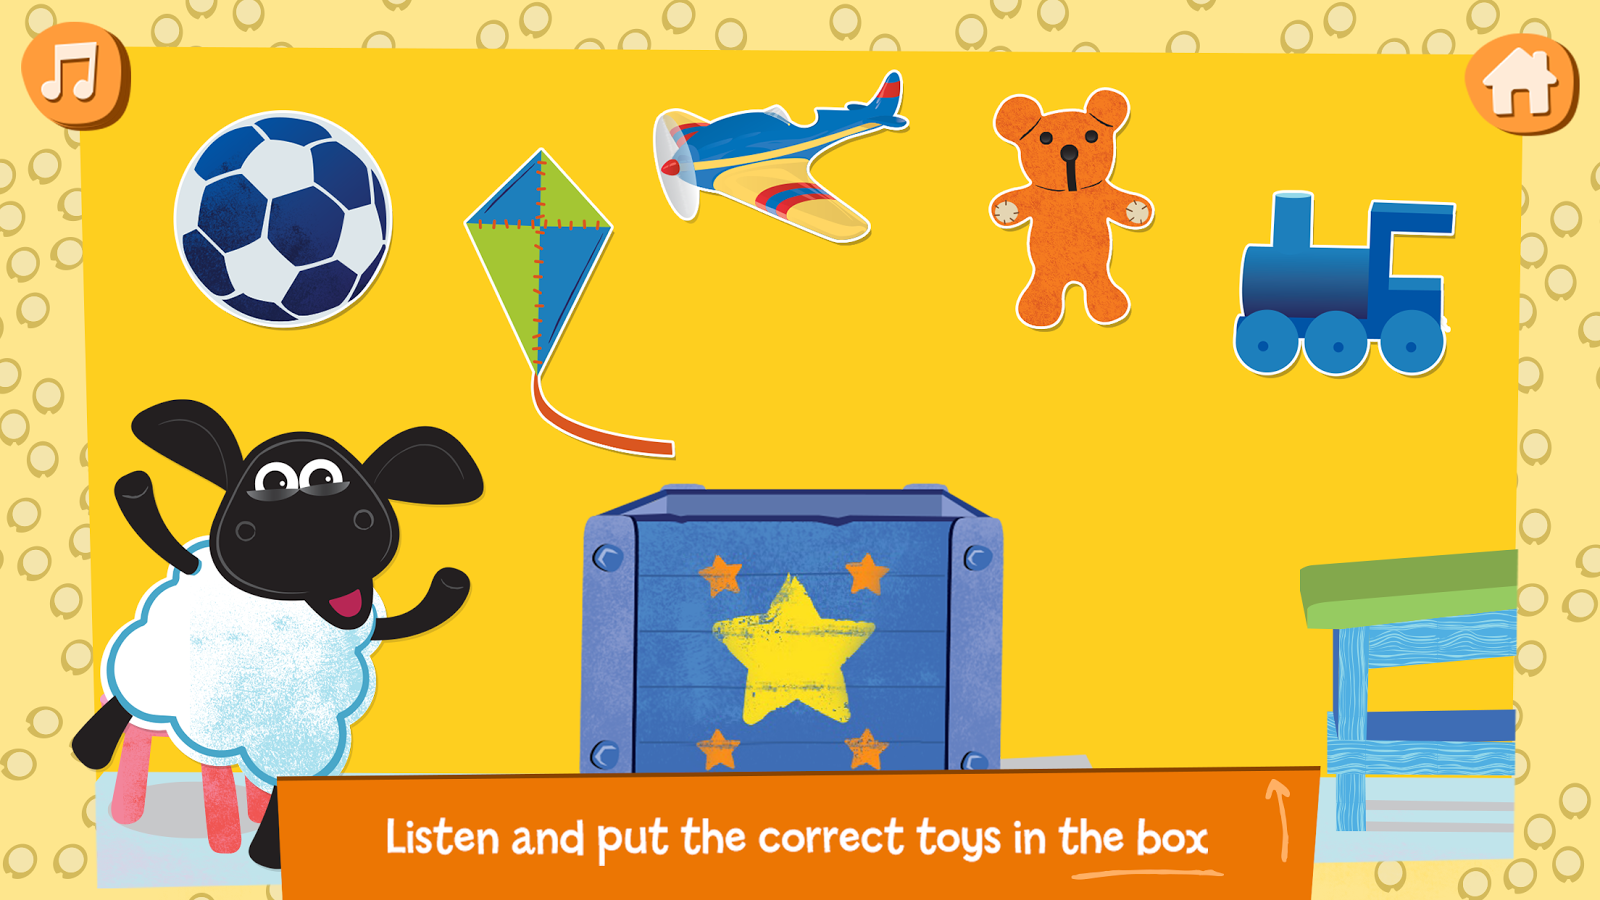 worksheet Learning Time learning time with timmy 1 android apps on google play screenshot